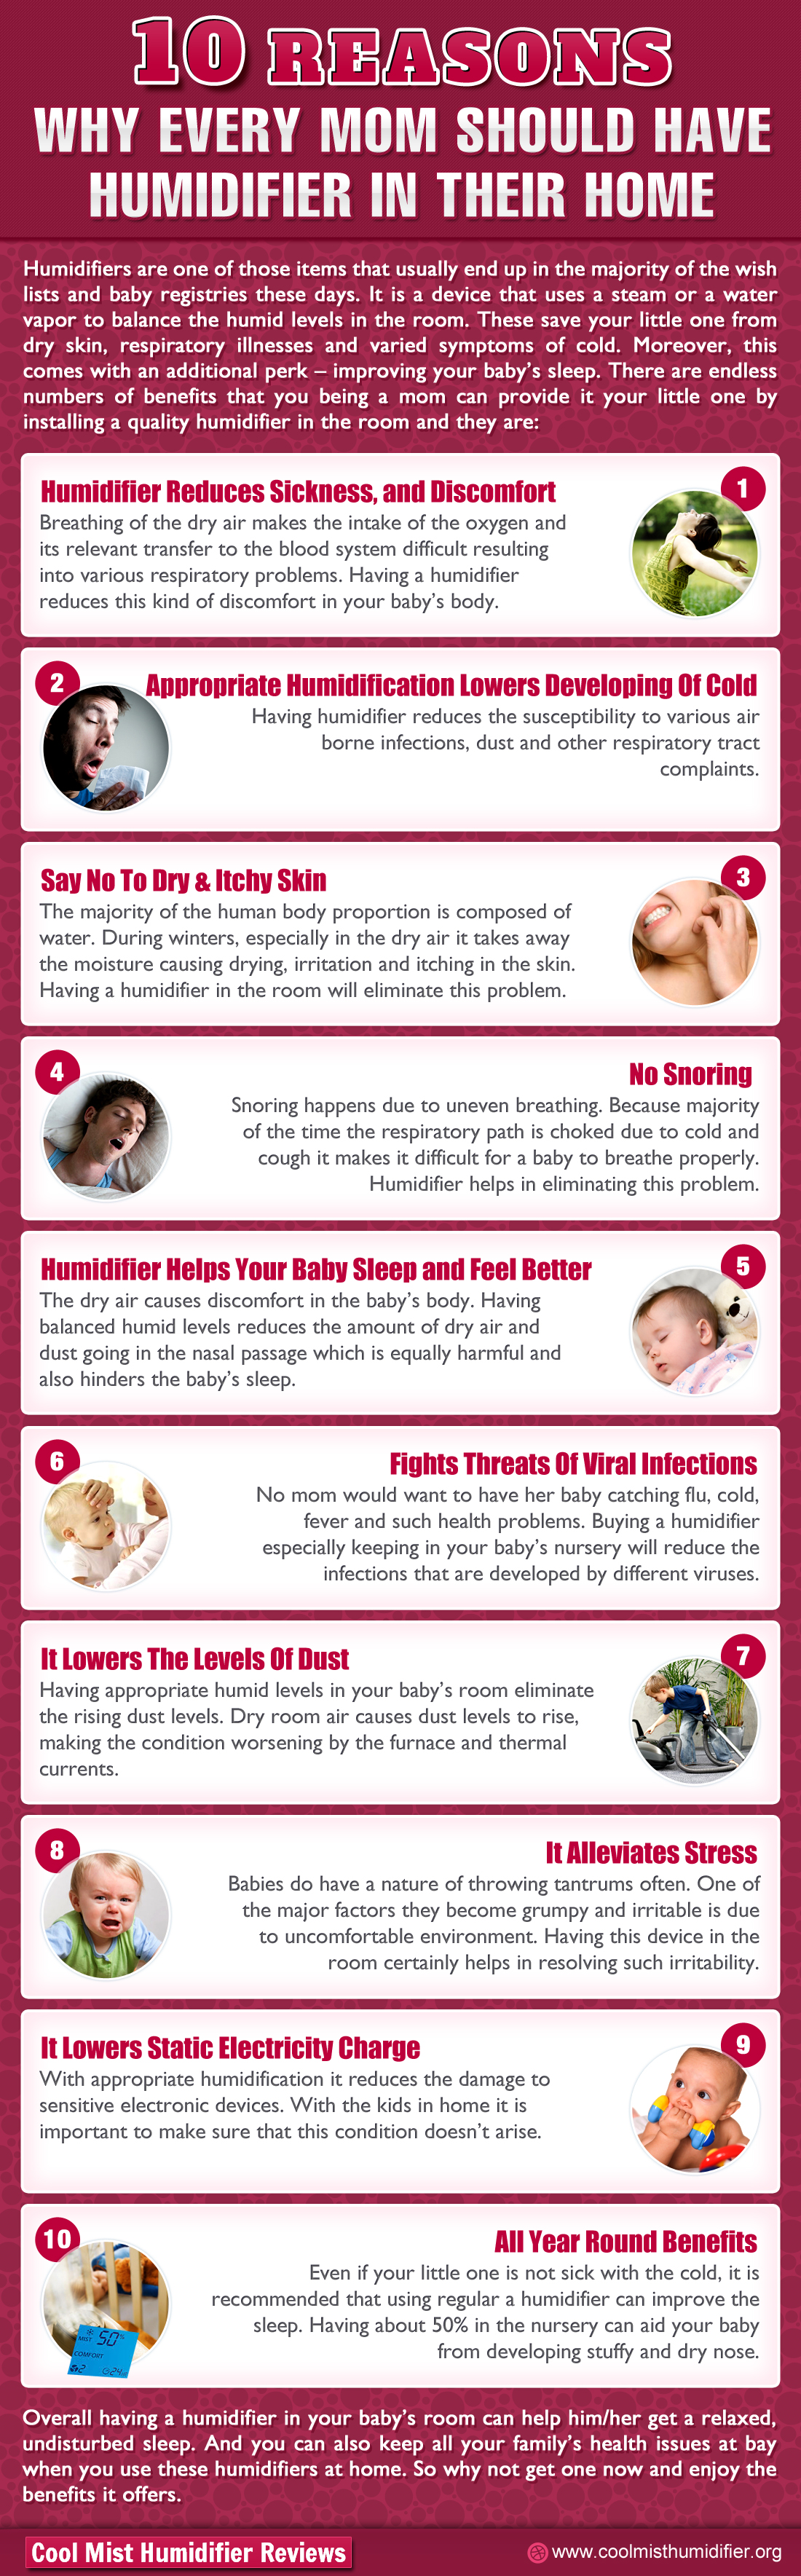 Why Every Mom Should Have Humidifier In Their Home (Infographic #BA113F